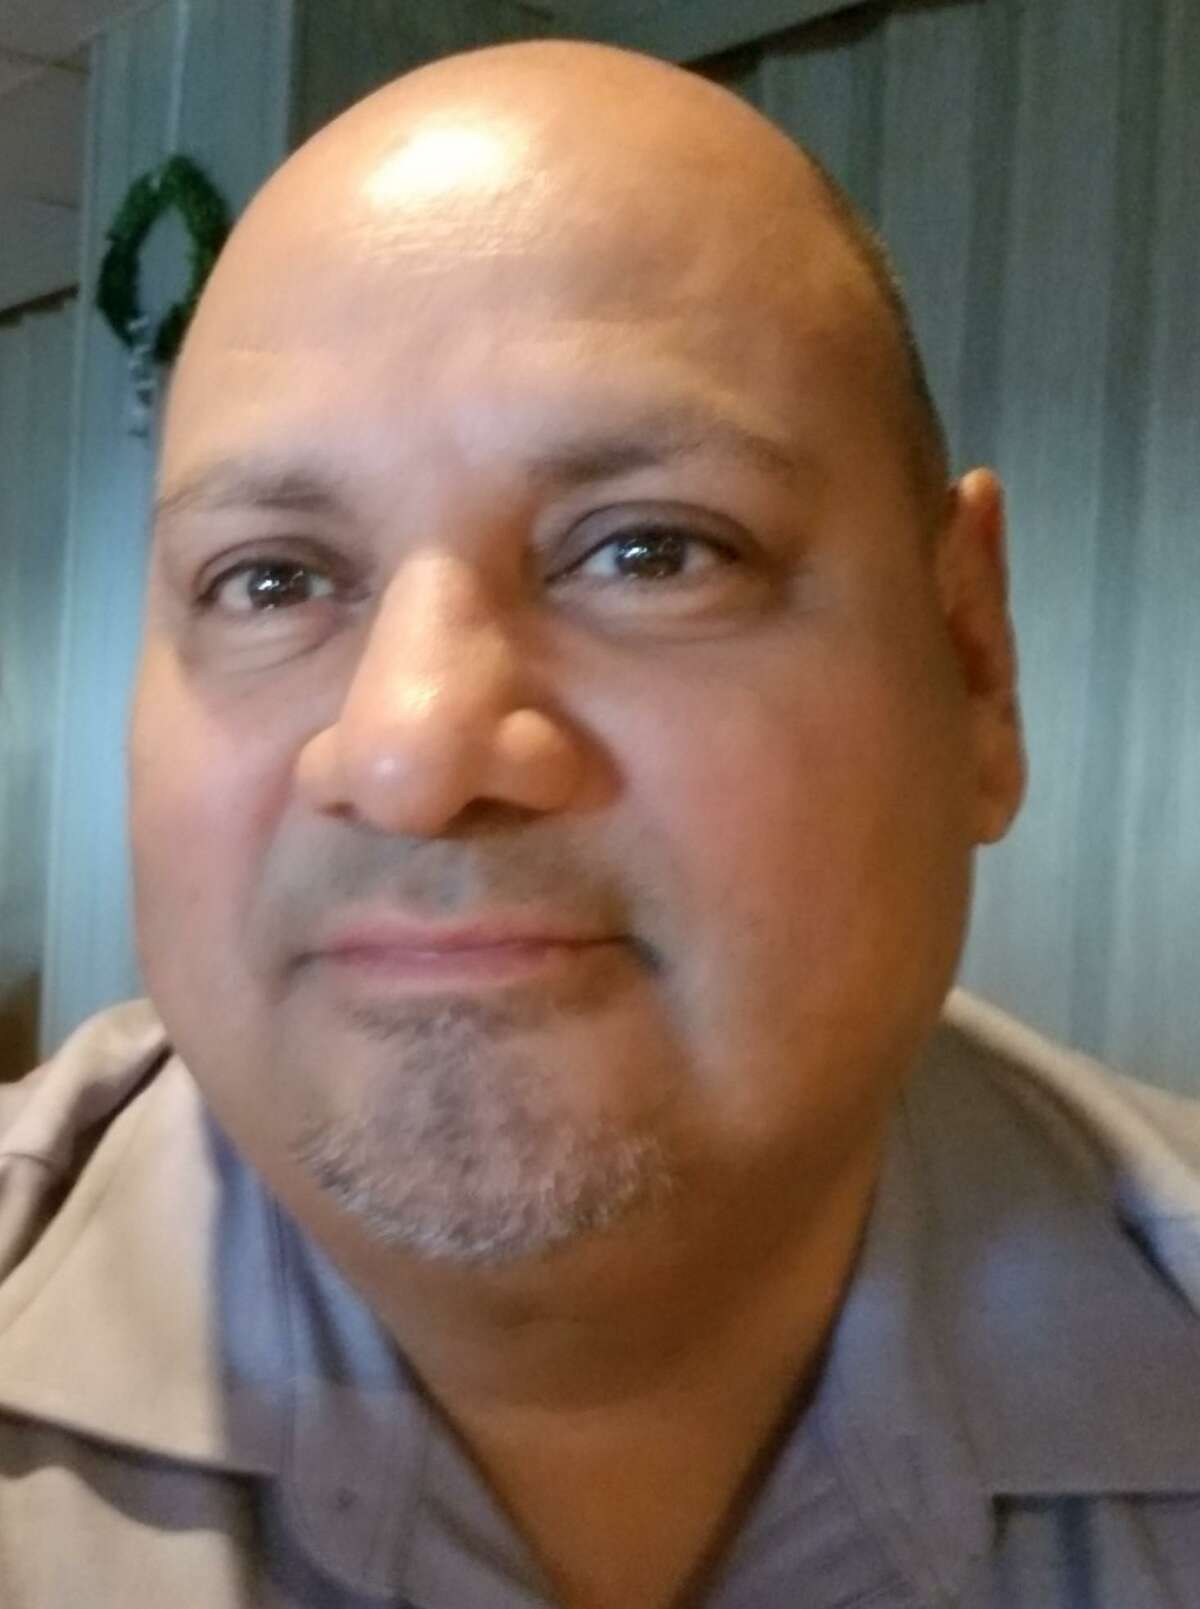 Houston Public Works employee Joel Cirilo died Nov. 25, following a week-long stay in the hospital after testing positive for COVID-19. Cirilo began his career in the Code Enforcement Division in 2014.